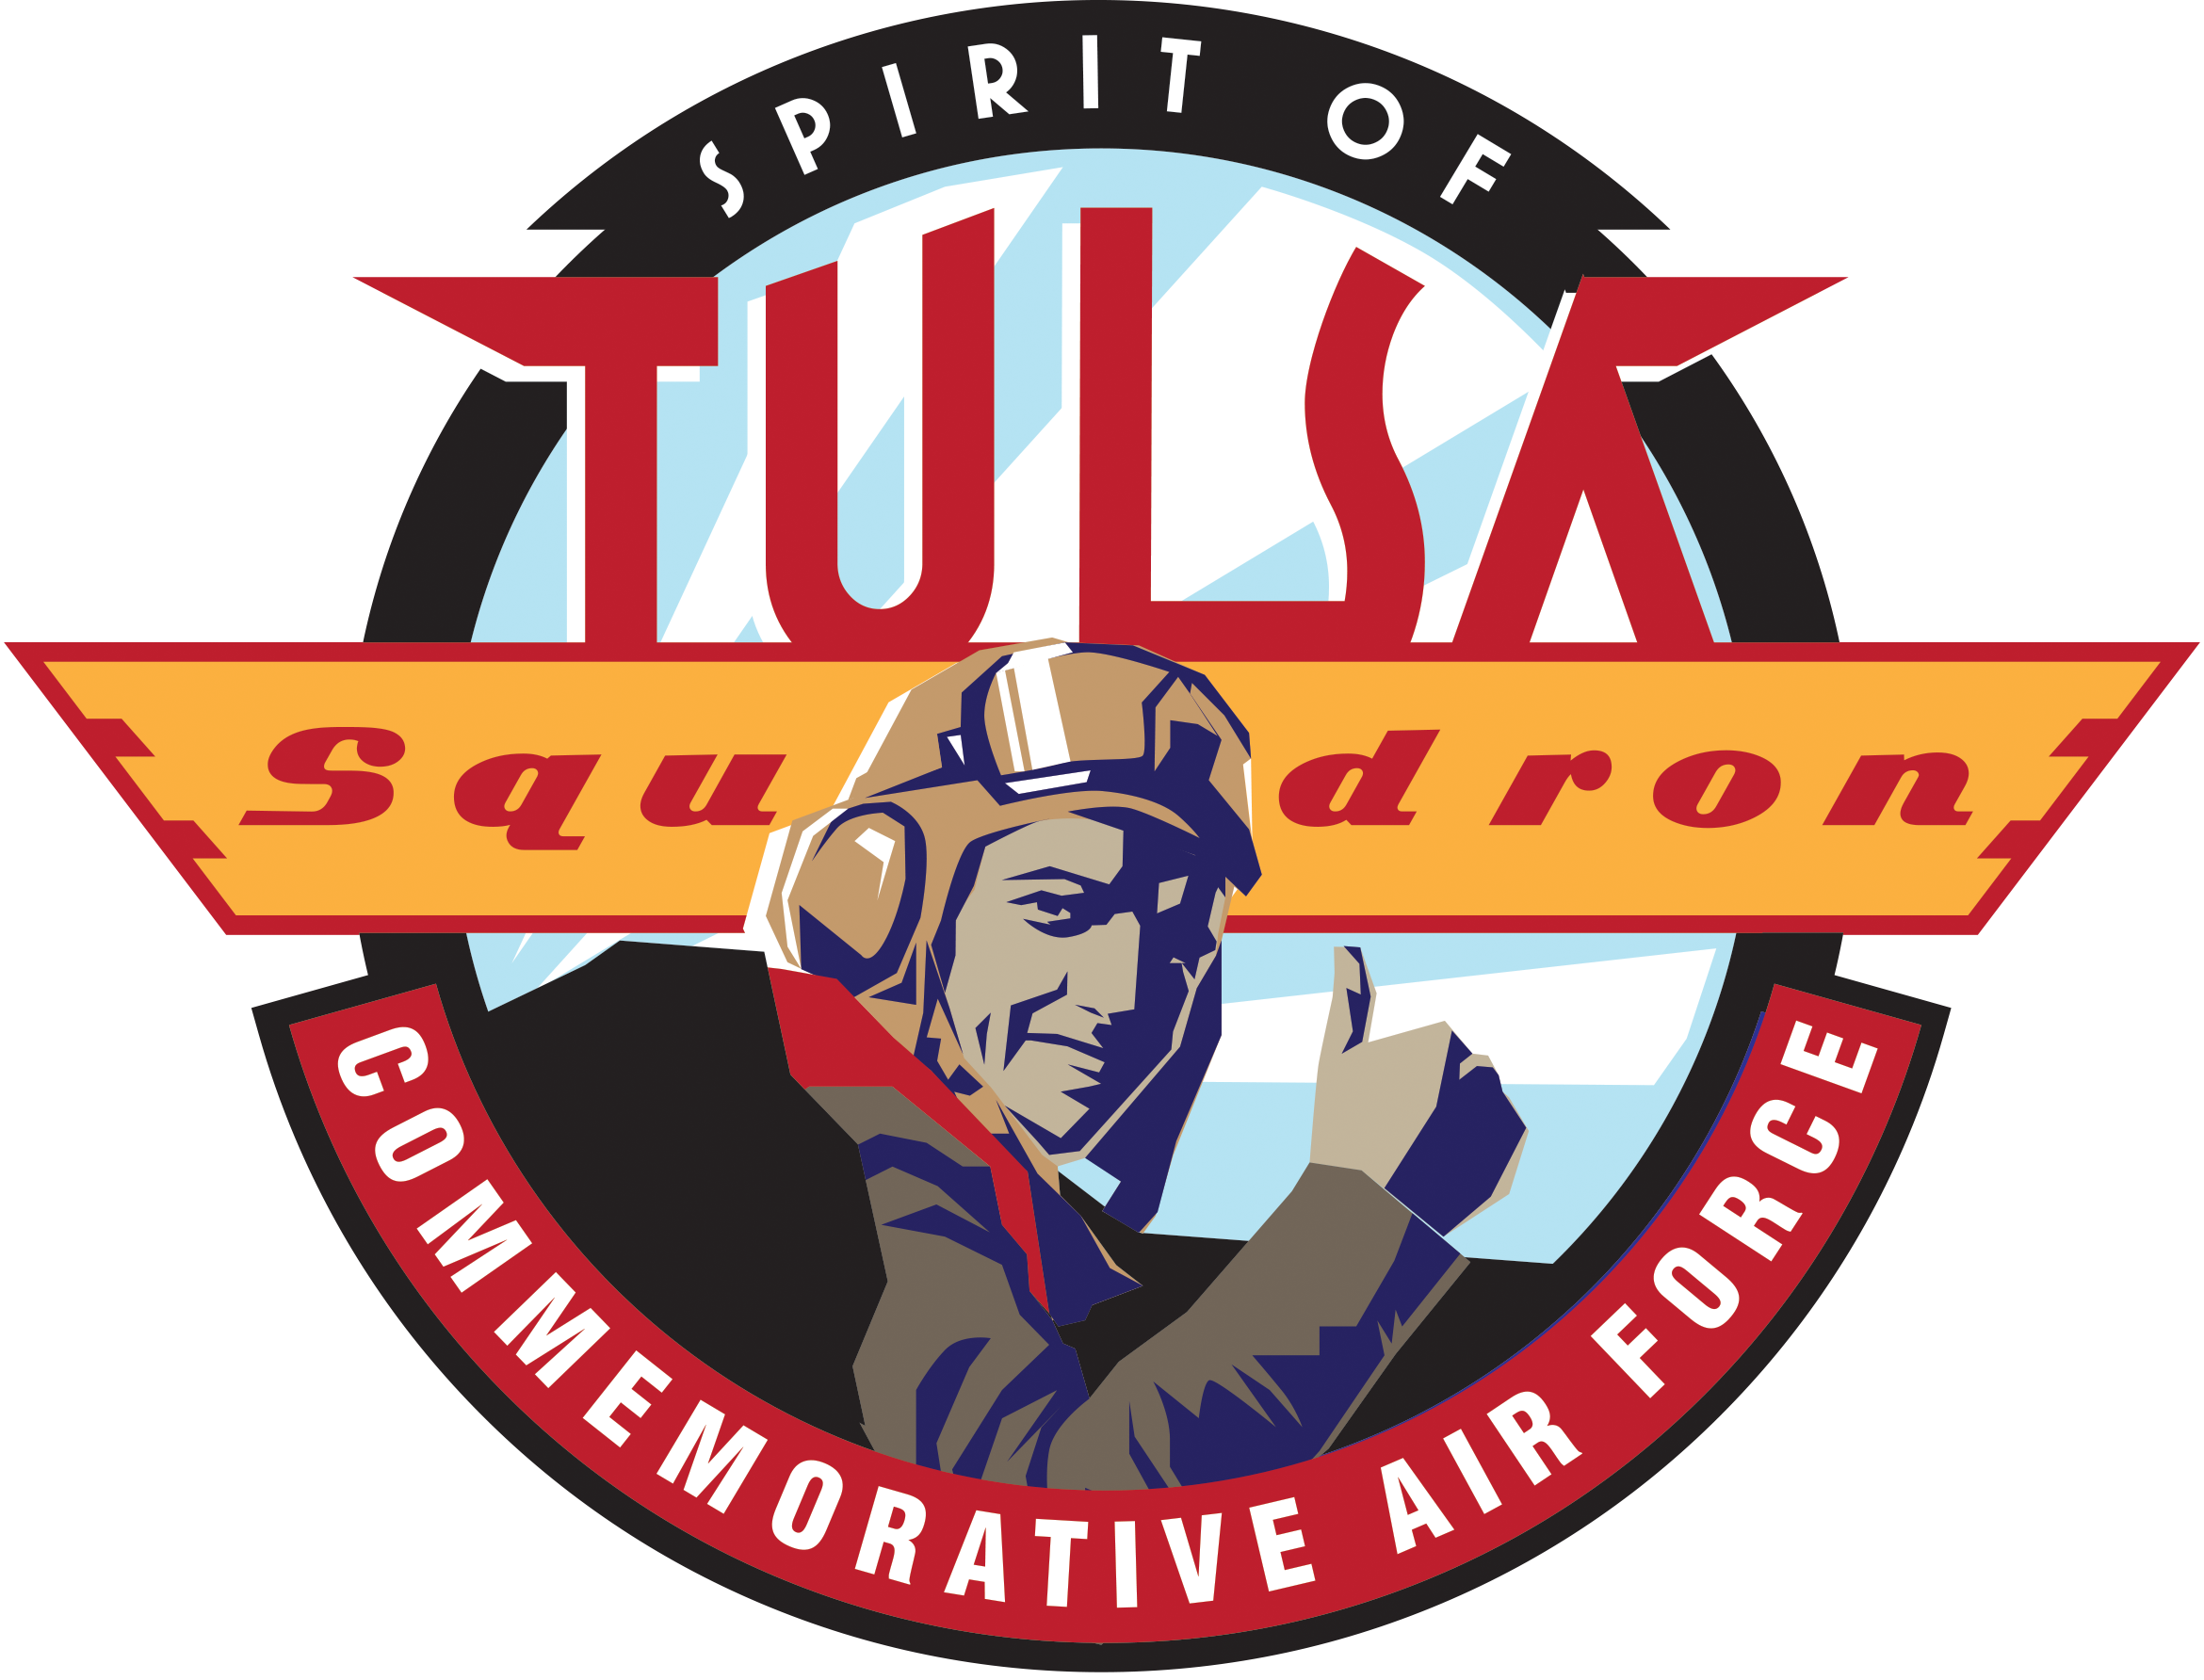 Spirit of Tulsa Logo